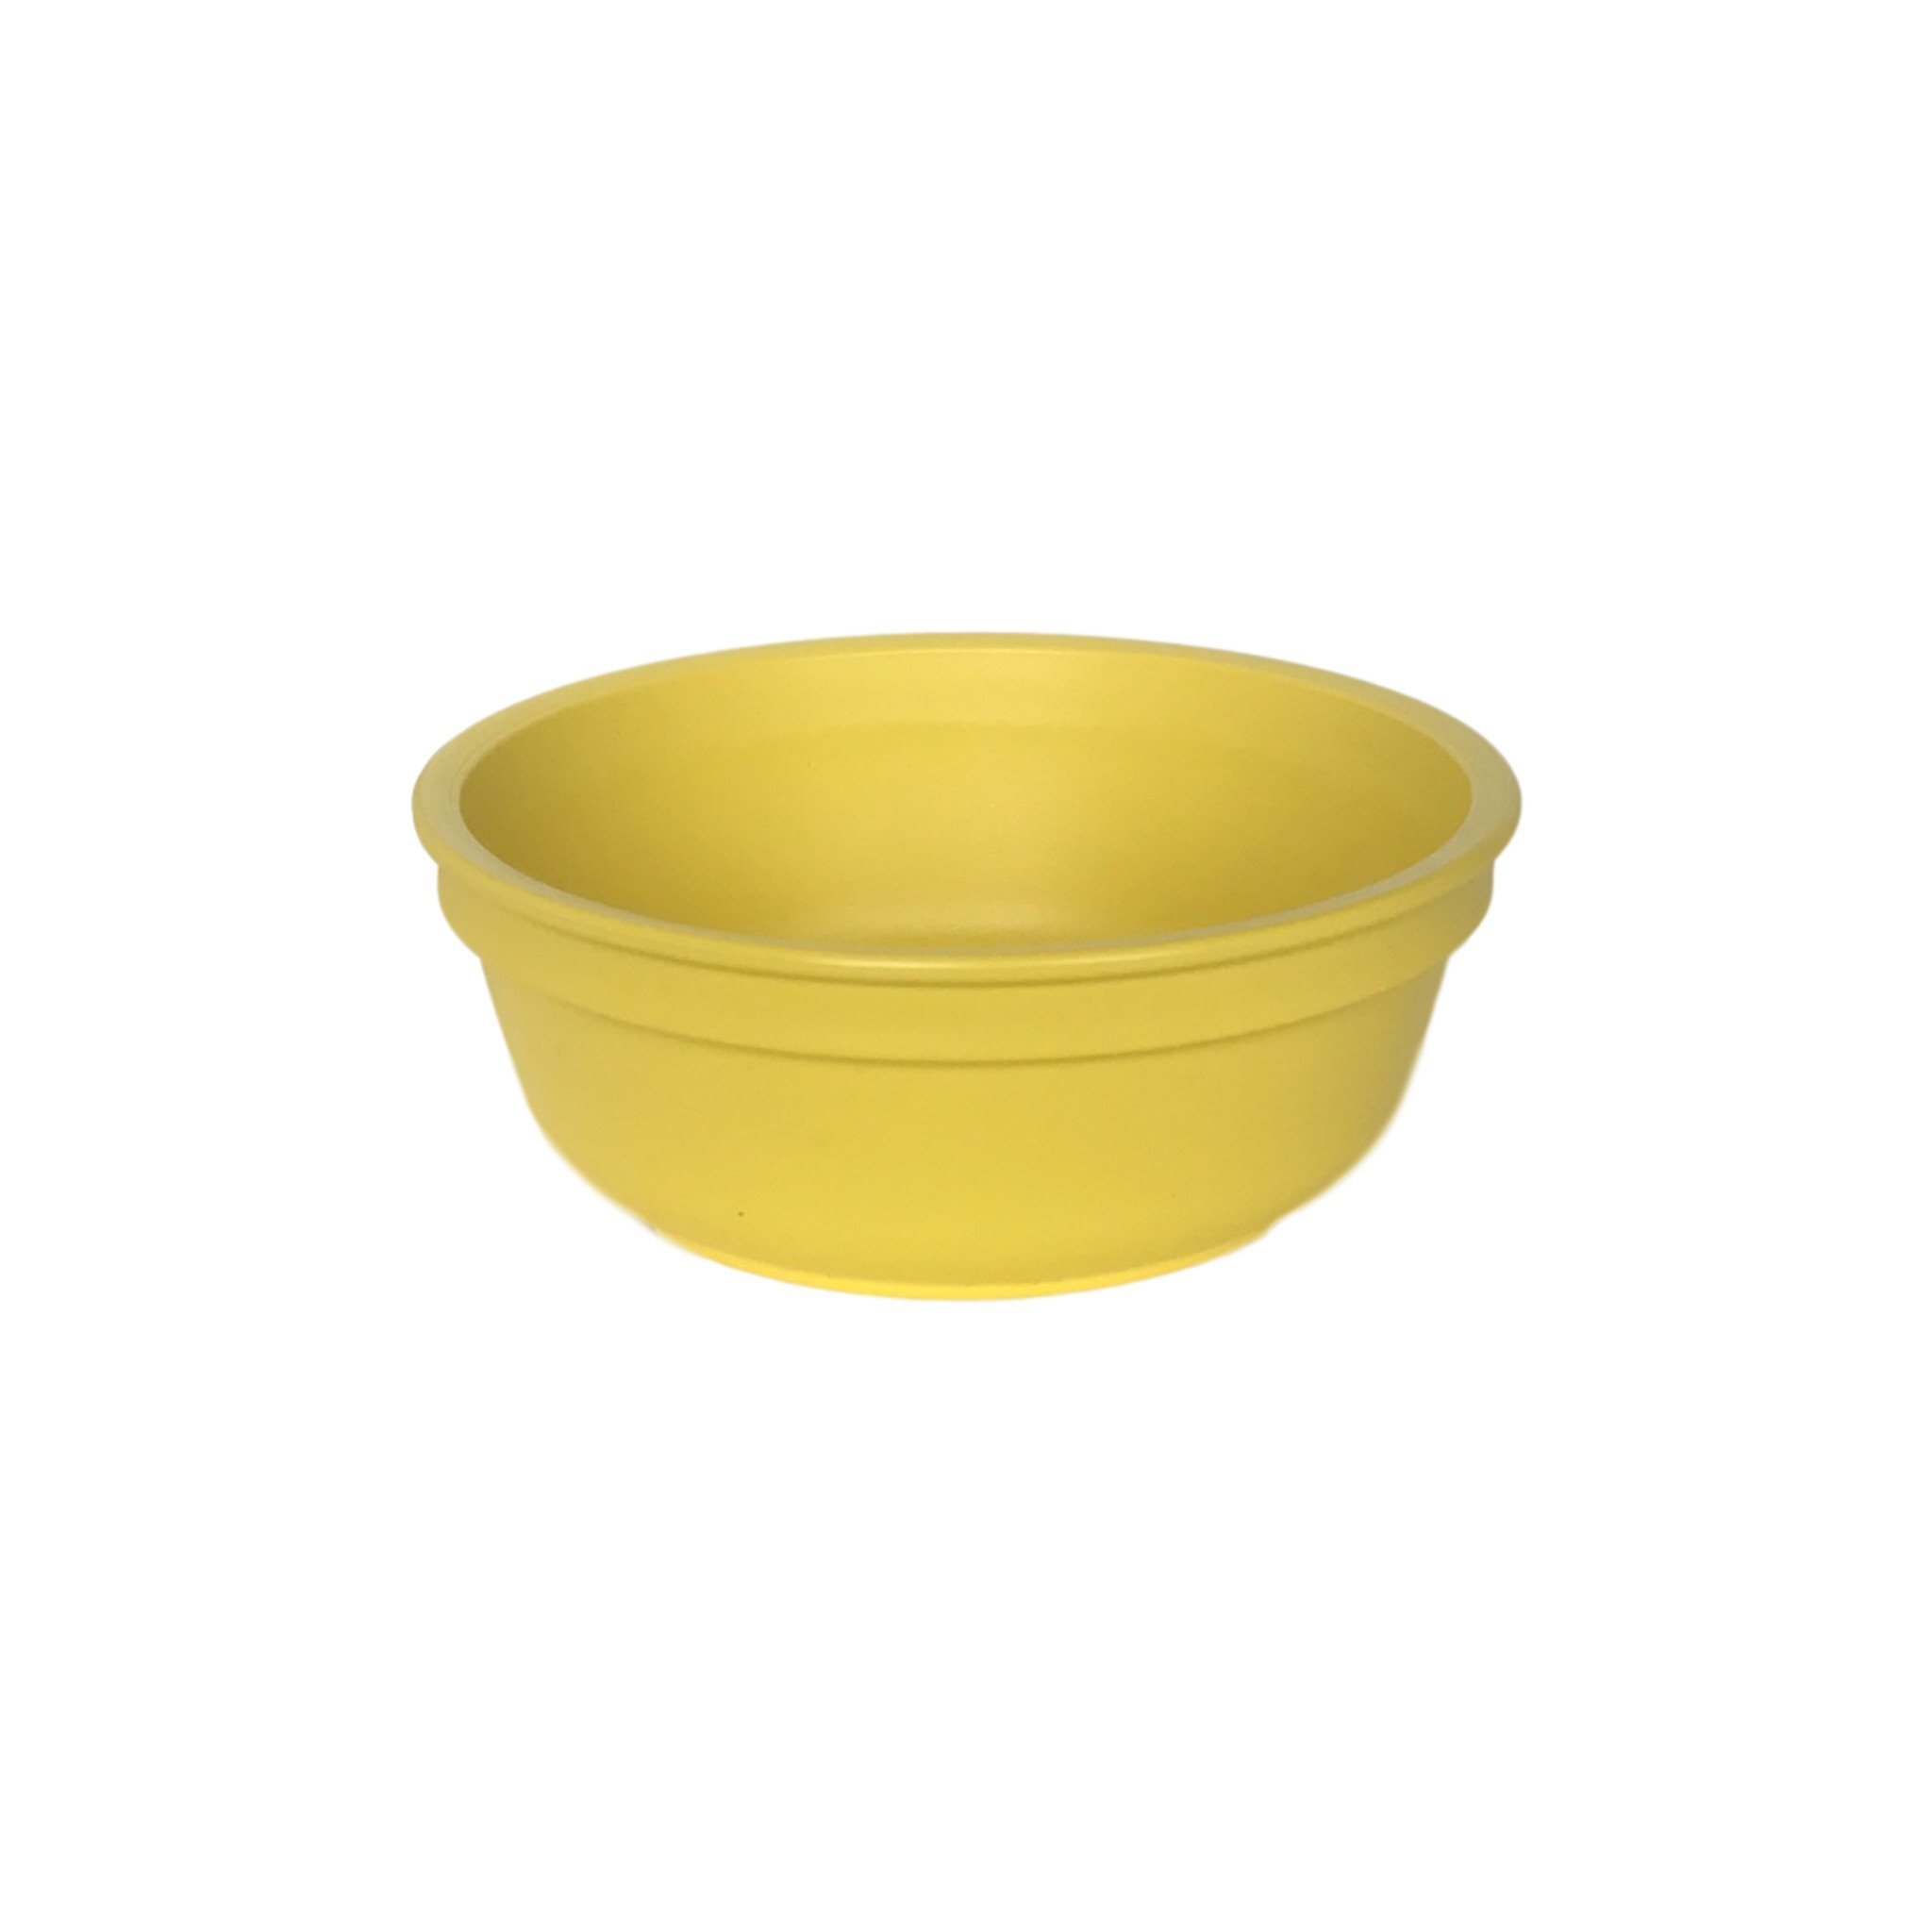 Replay Bowl Replay Lifestyle Yellow at Little Earth Nest Eco Shop